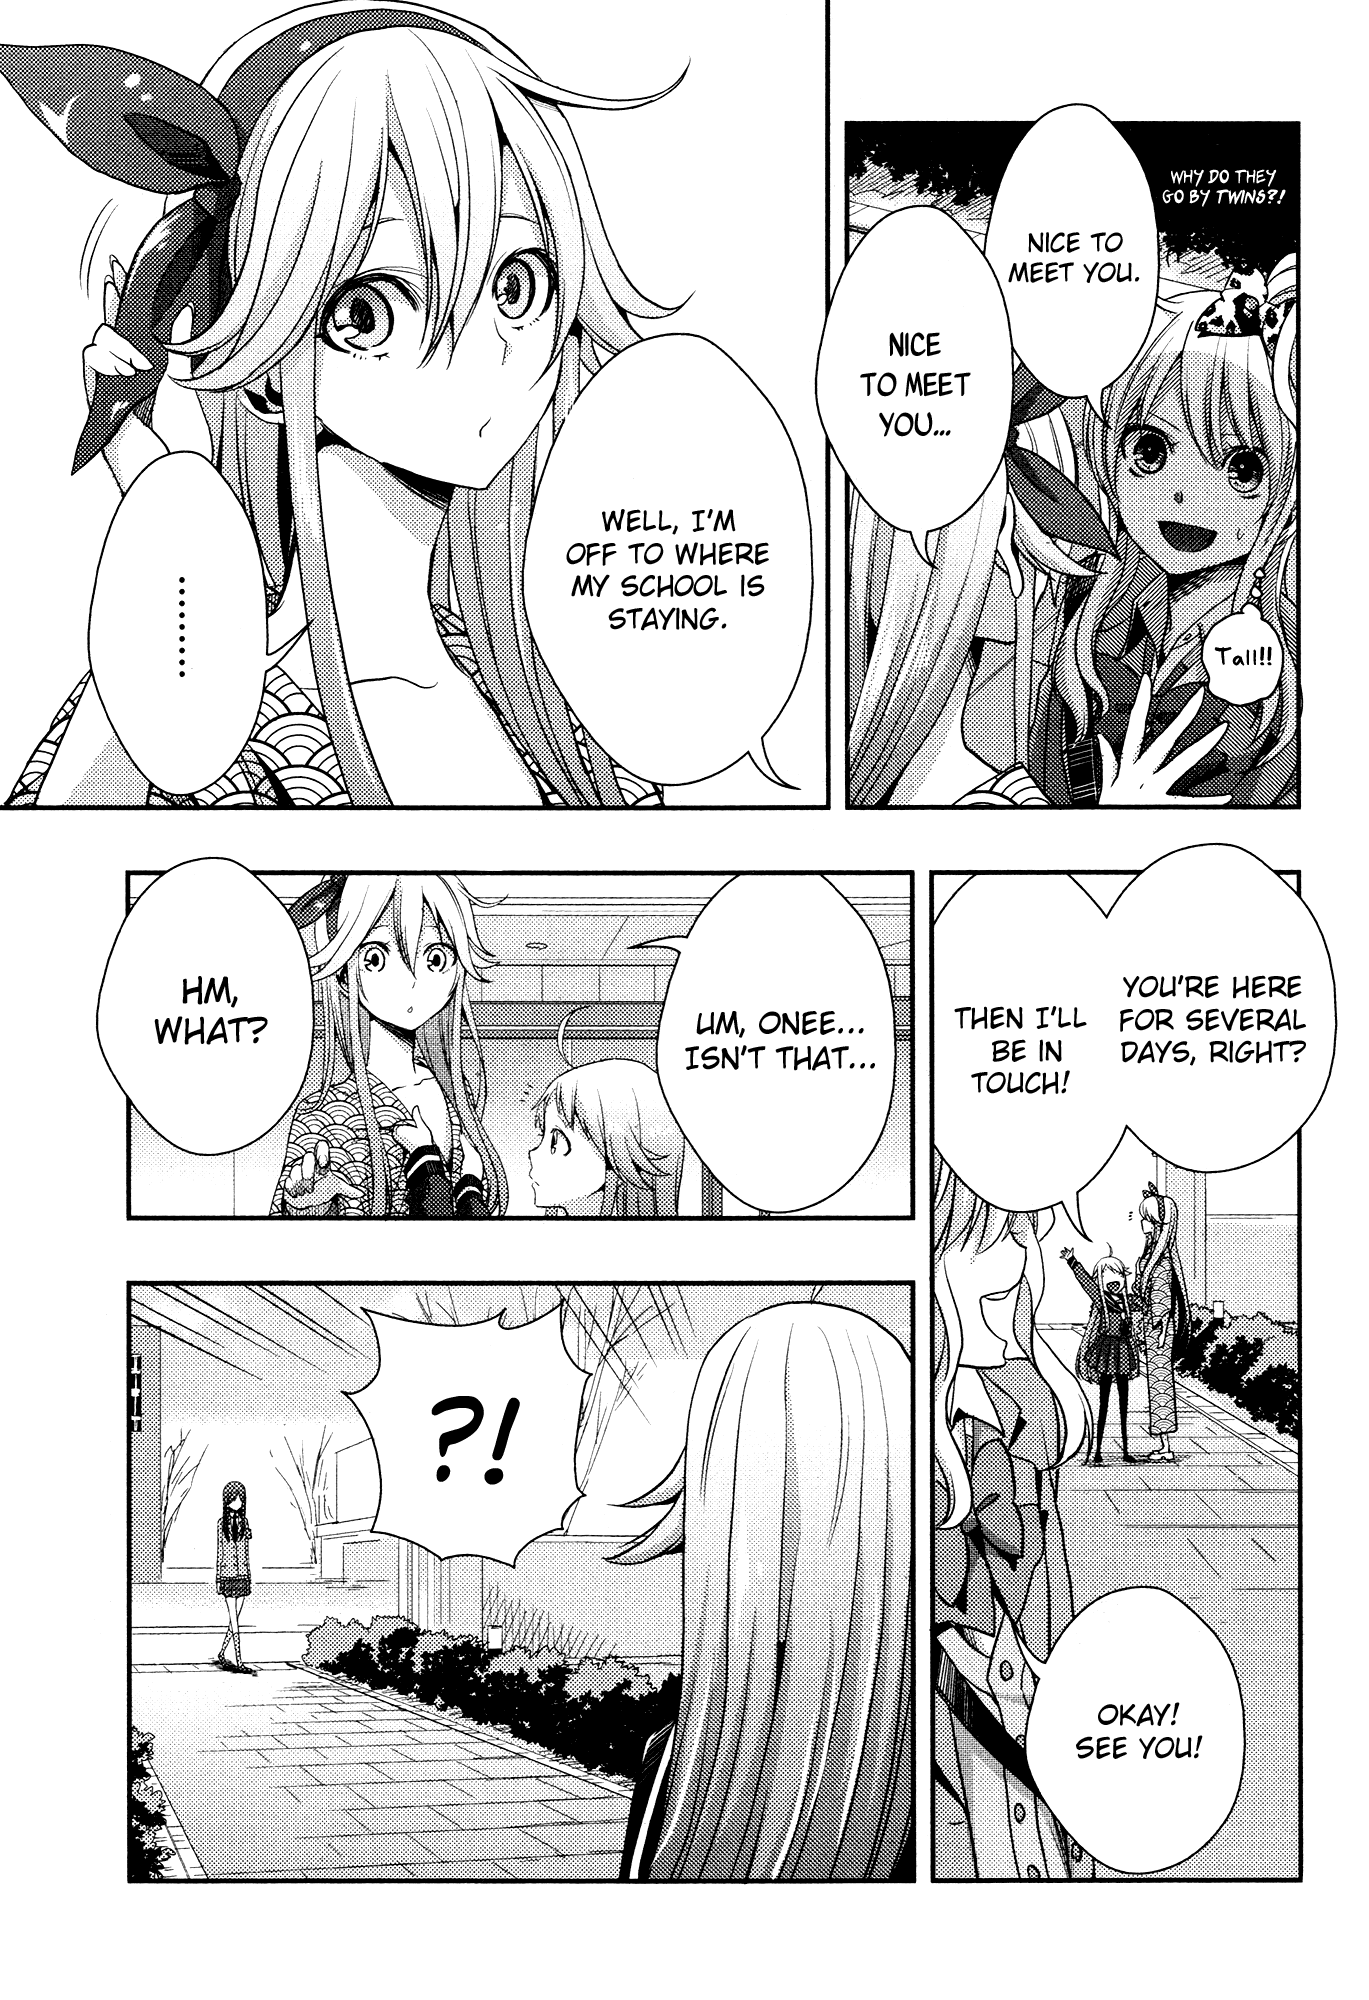 Citrus (SABURO Uta) - Chapter 17